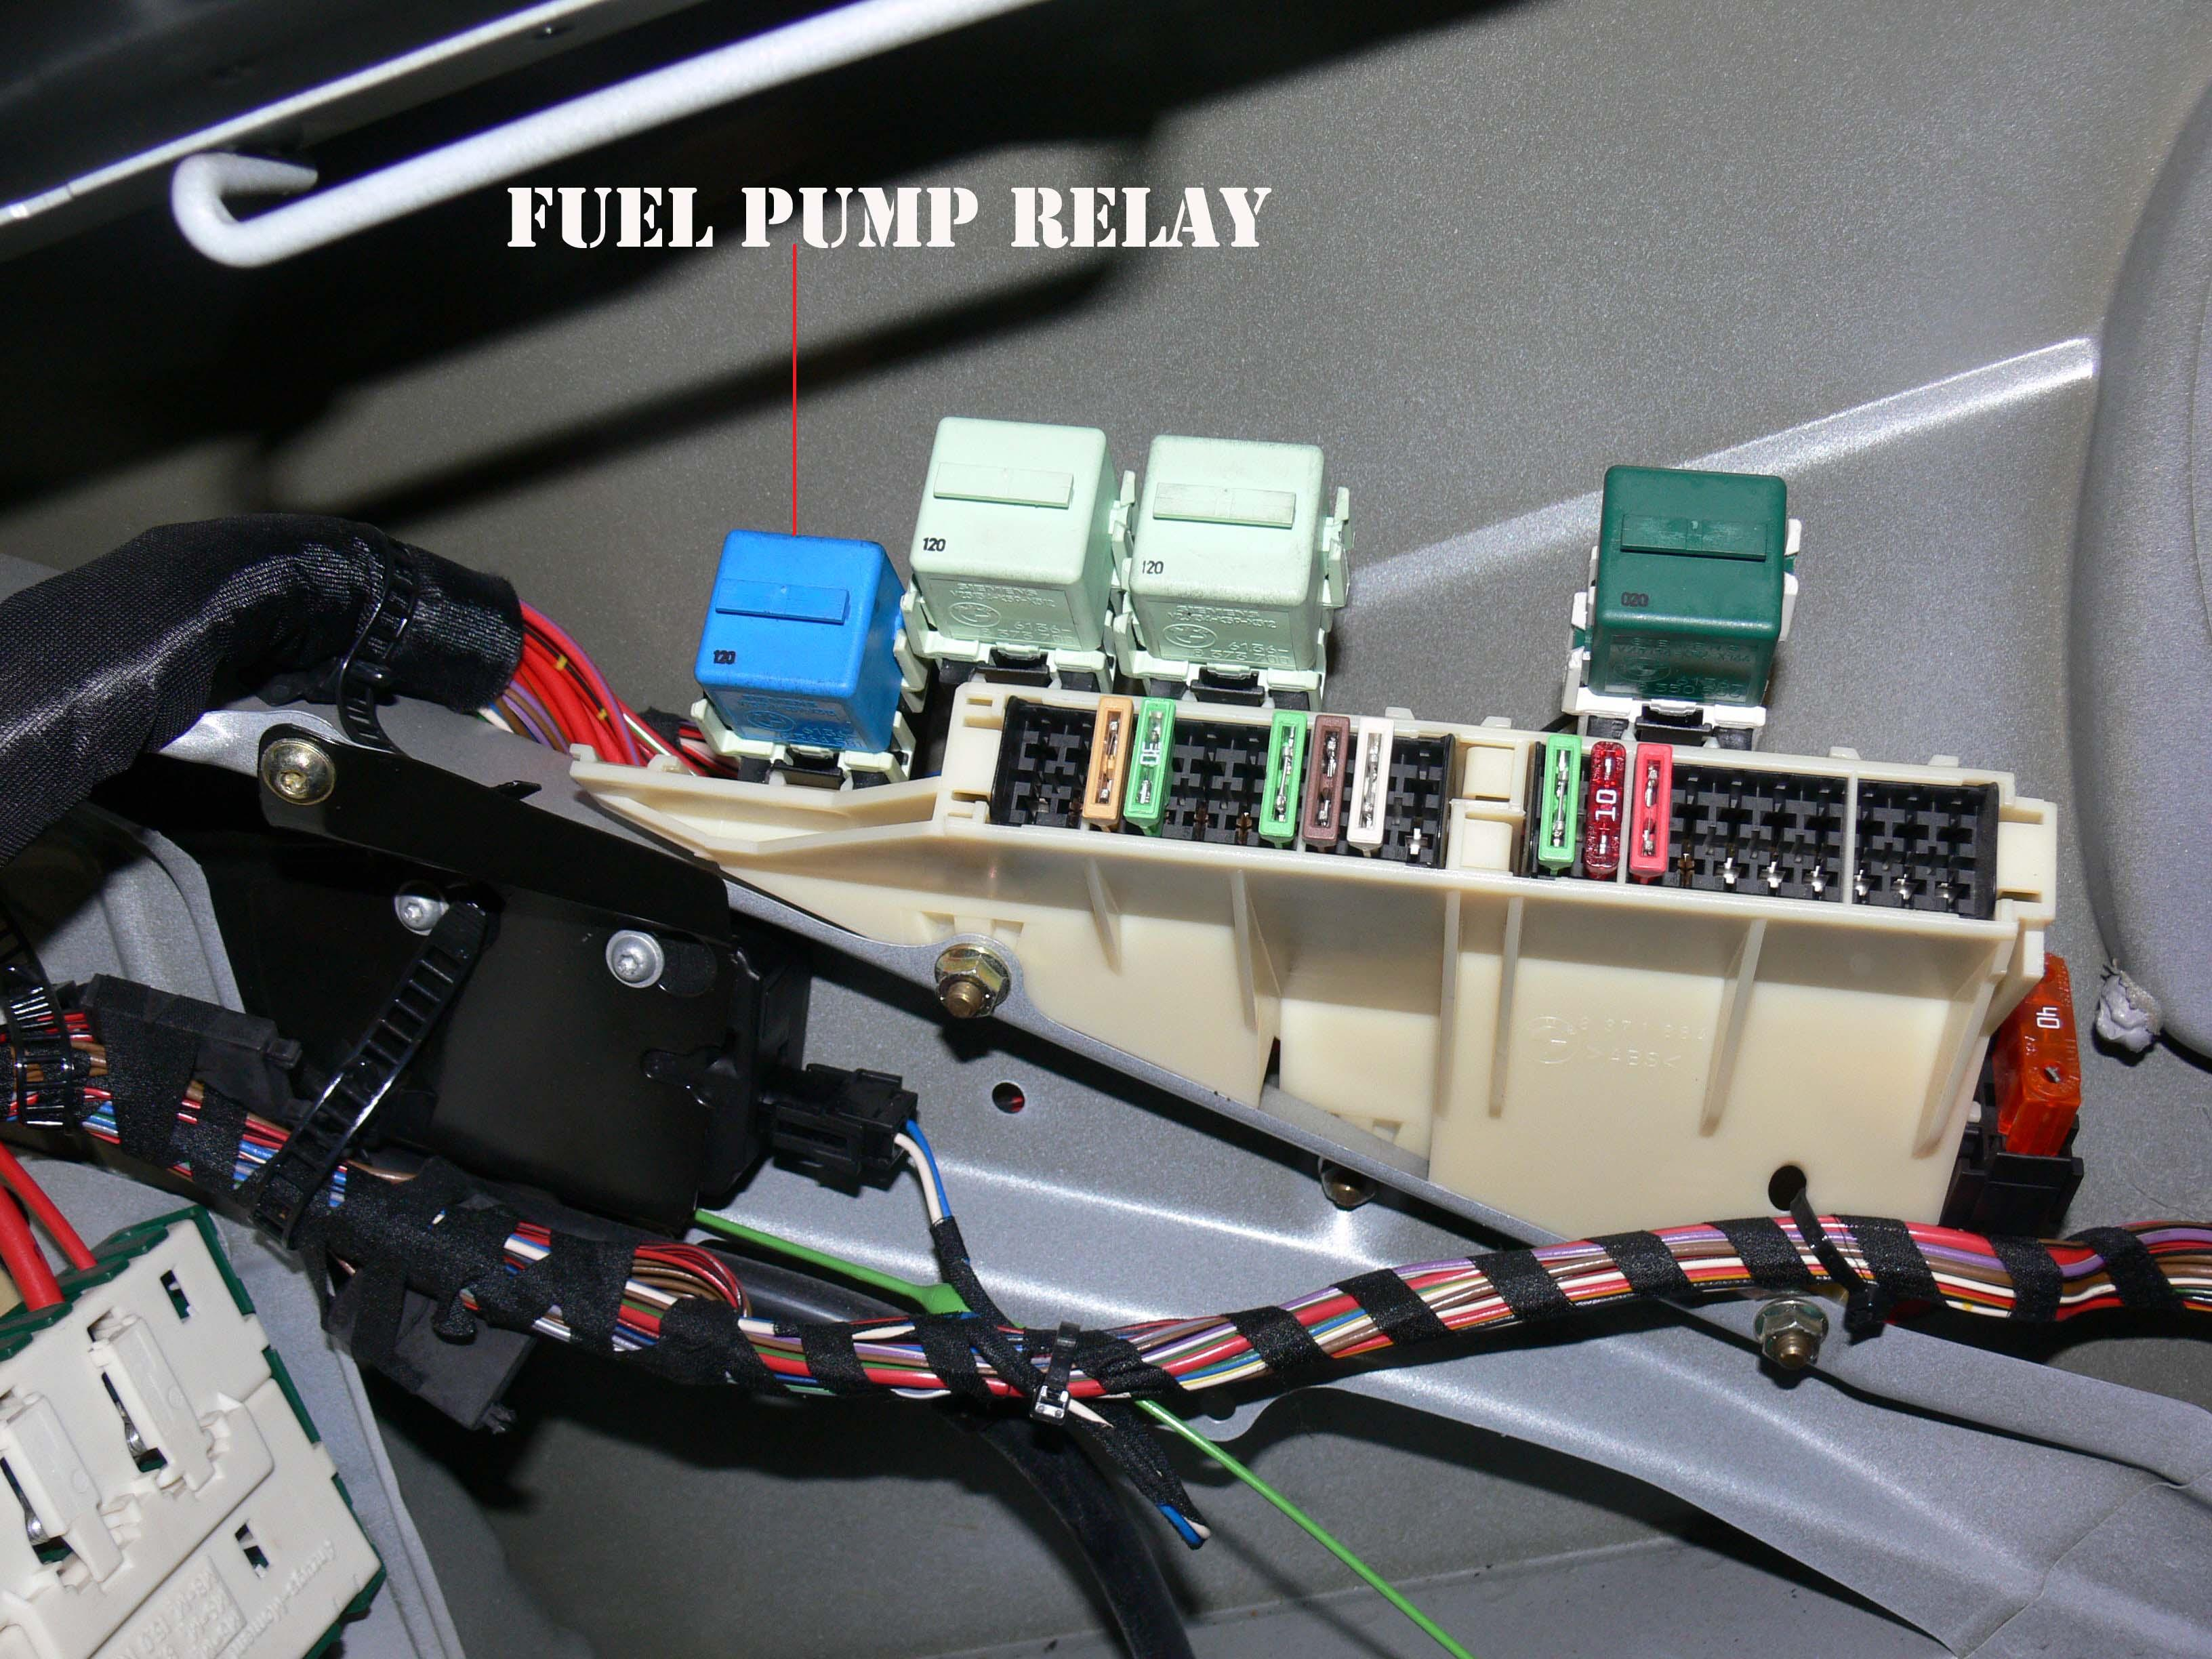 2008 Bmw 530i Fuse Box Wiring Library 535i Diagram Lights 2003 X5 Relay Example Electrical U2022